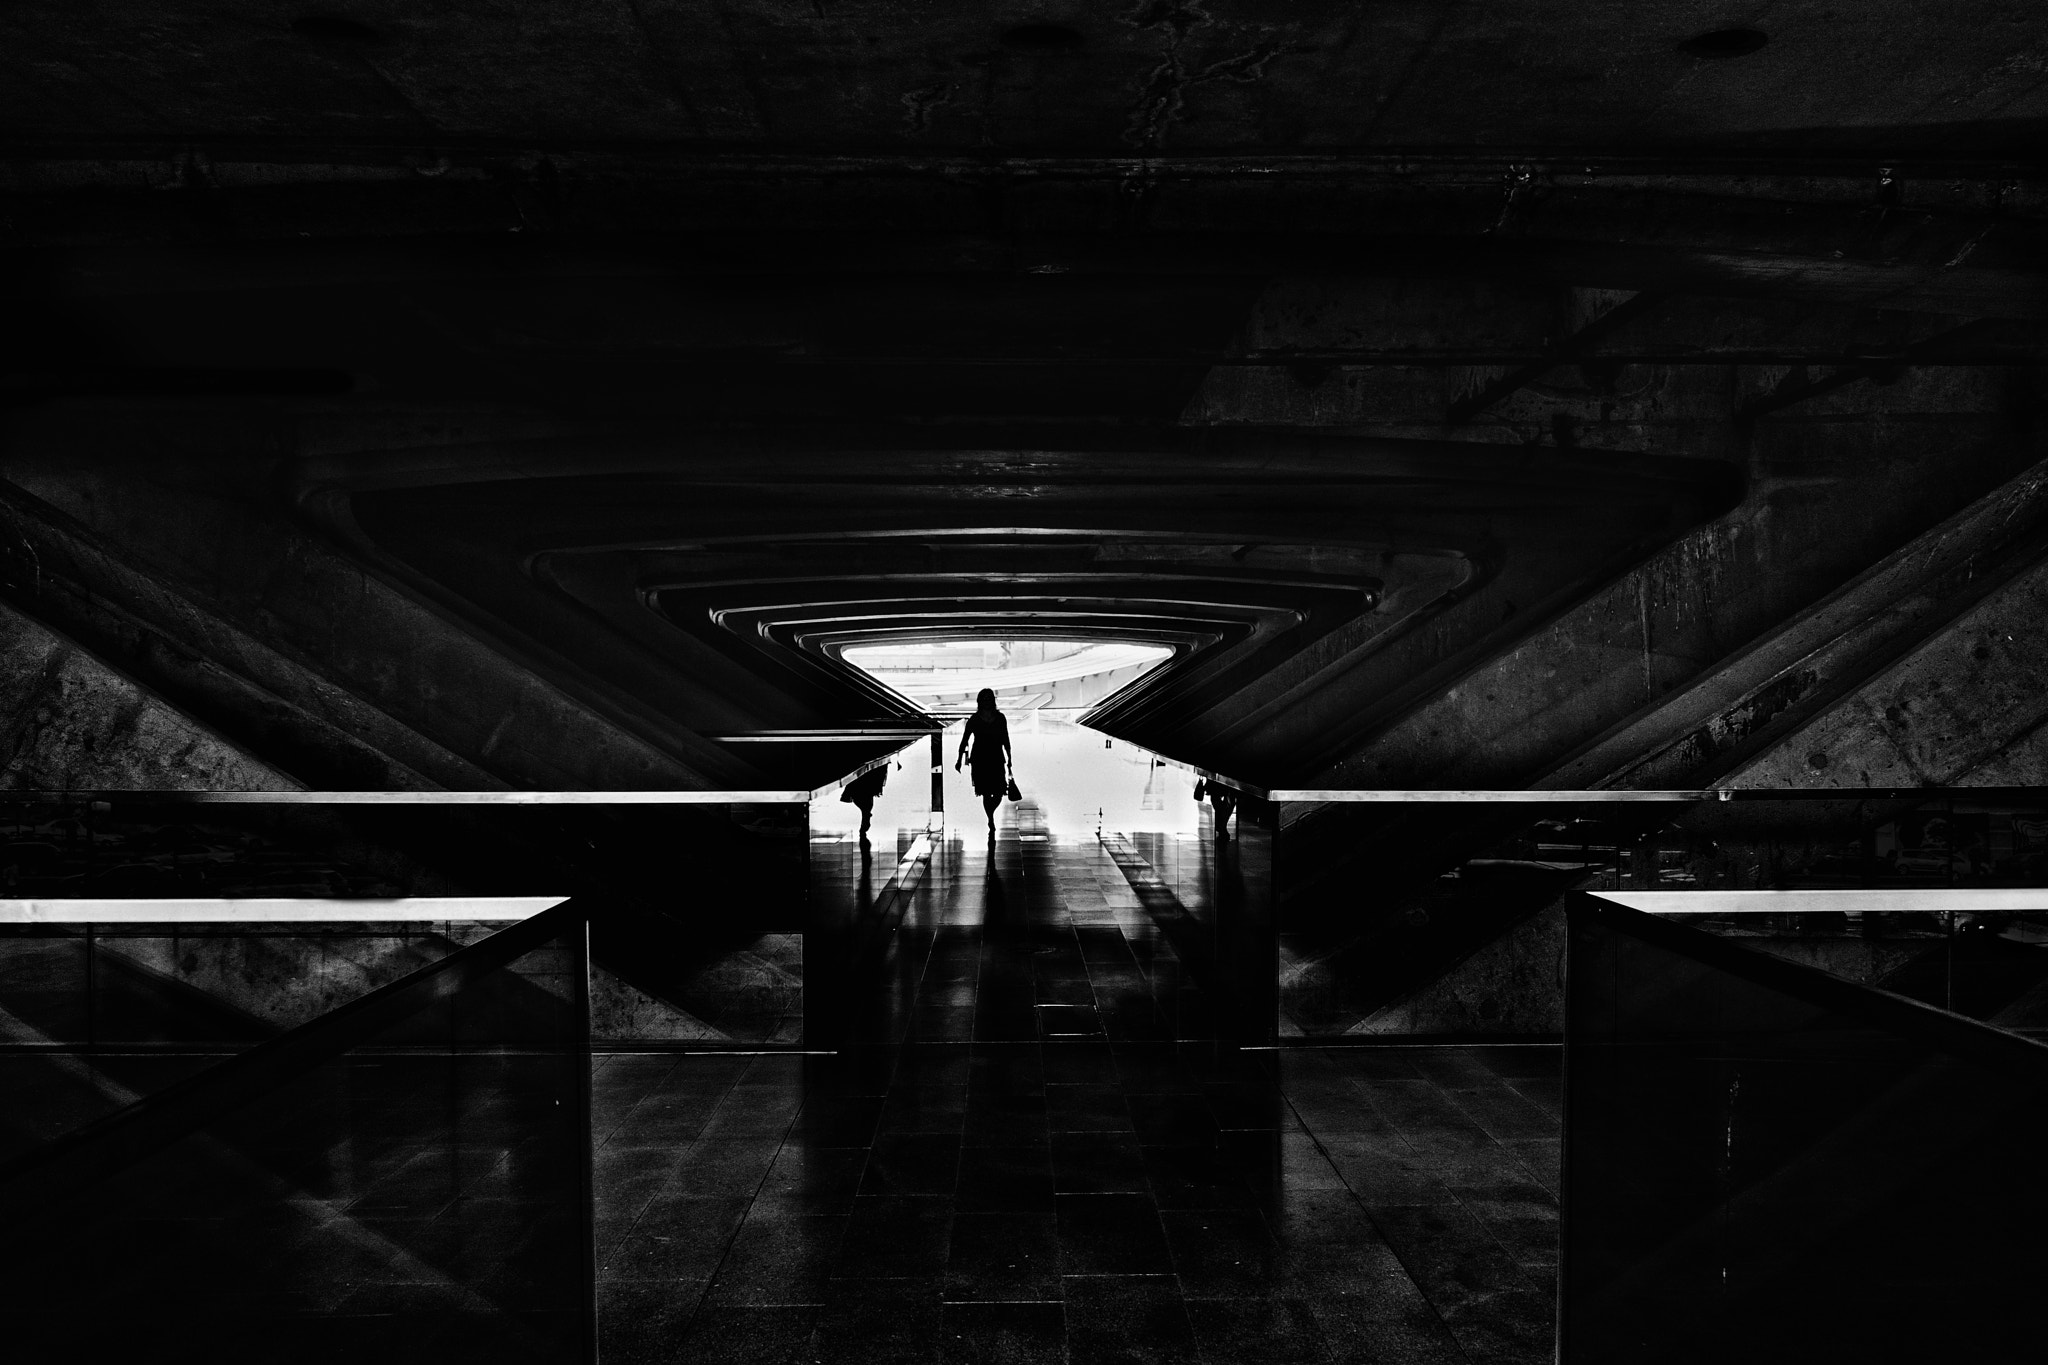 Photograph Sometimes The Light by Paulo Abrantes on 500px